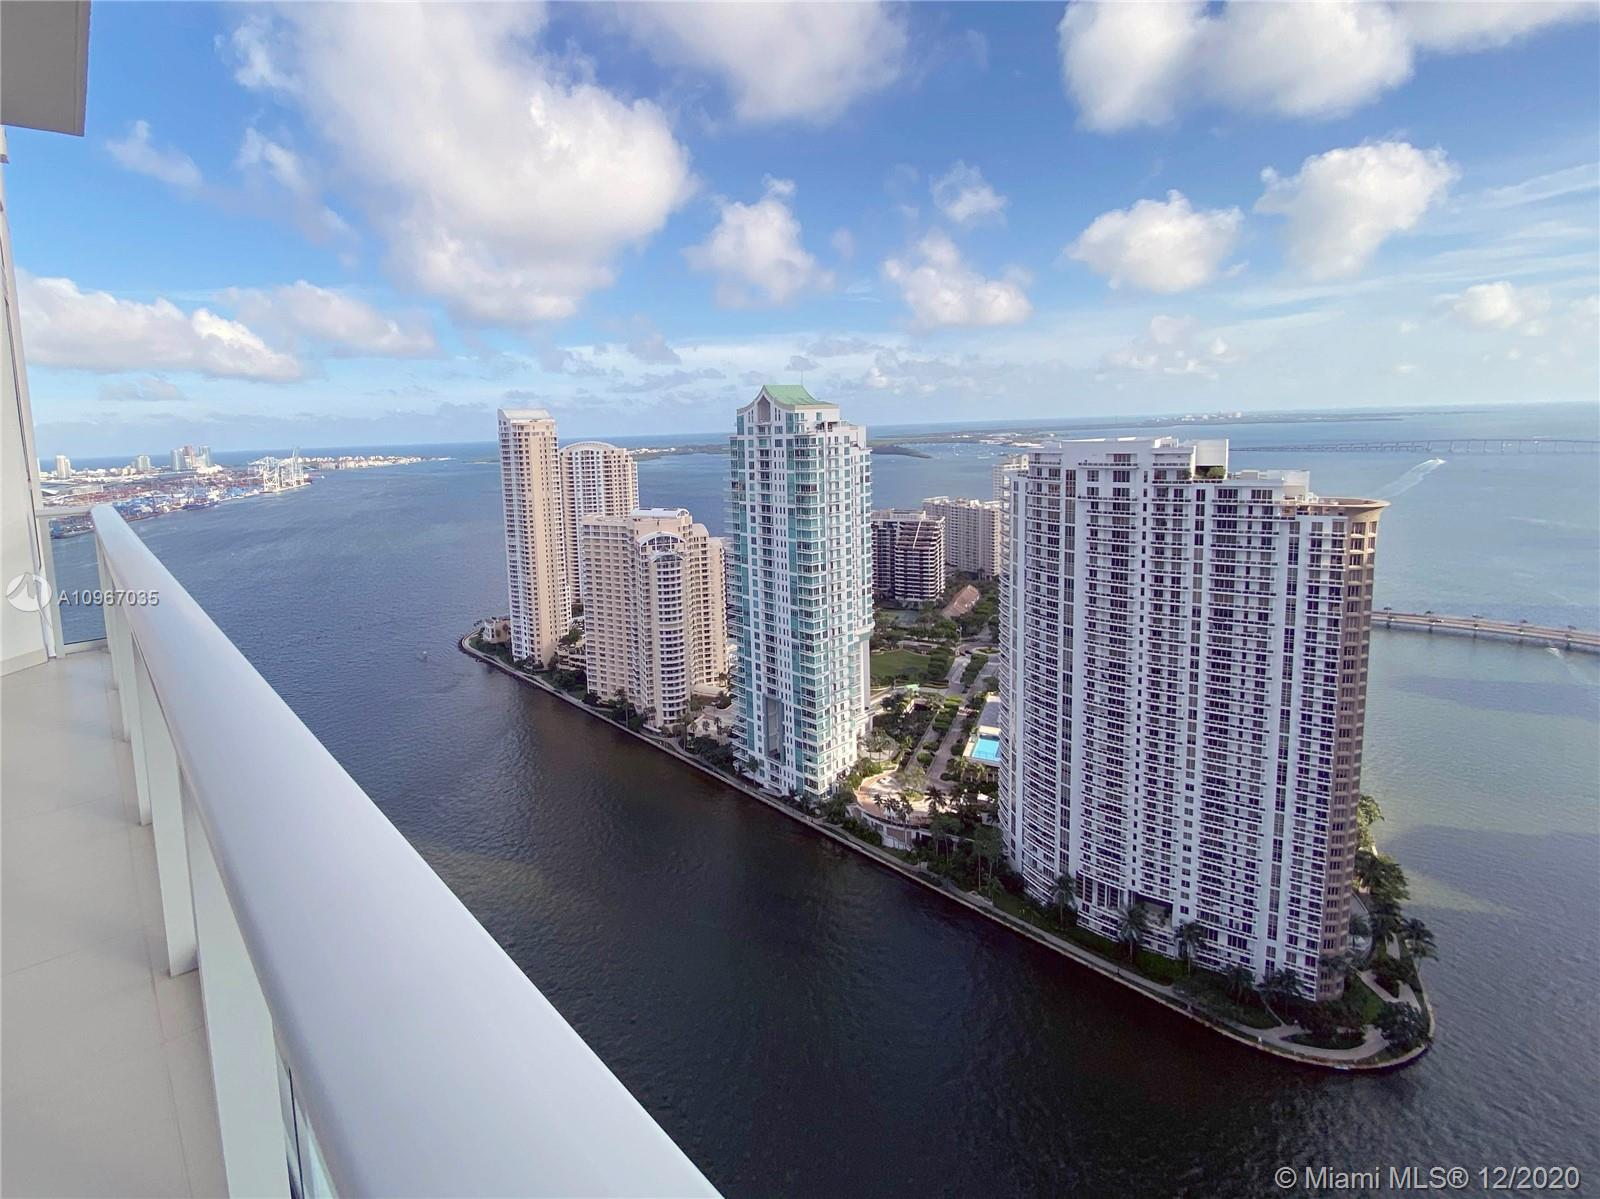 SEE VIDEO!!!!  Exclusive and exclusive opportunity, Penthouse 3B / 3.5B with an incredible balcony and direct ocean views from every room. Contemporary island kitchen with high quality appliances, double height ceilings, glass rails (exterior), large master bath, title in all bathrooms roller blinds, laundry room, valet service, fitness center, concierge and much more. Luxury living. With 2 parking spaces with option to 3rd parking  The best deal in all of downtown and Brickell for a penthouse. Ideal for investors or end users. SEE VIDEO!!!!!